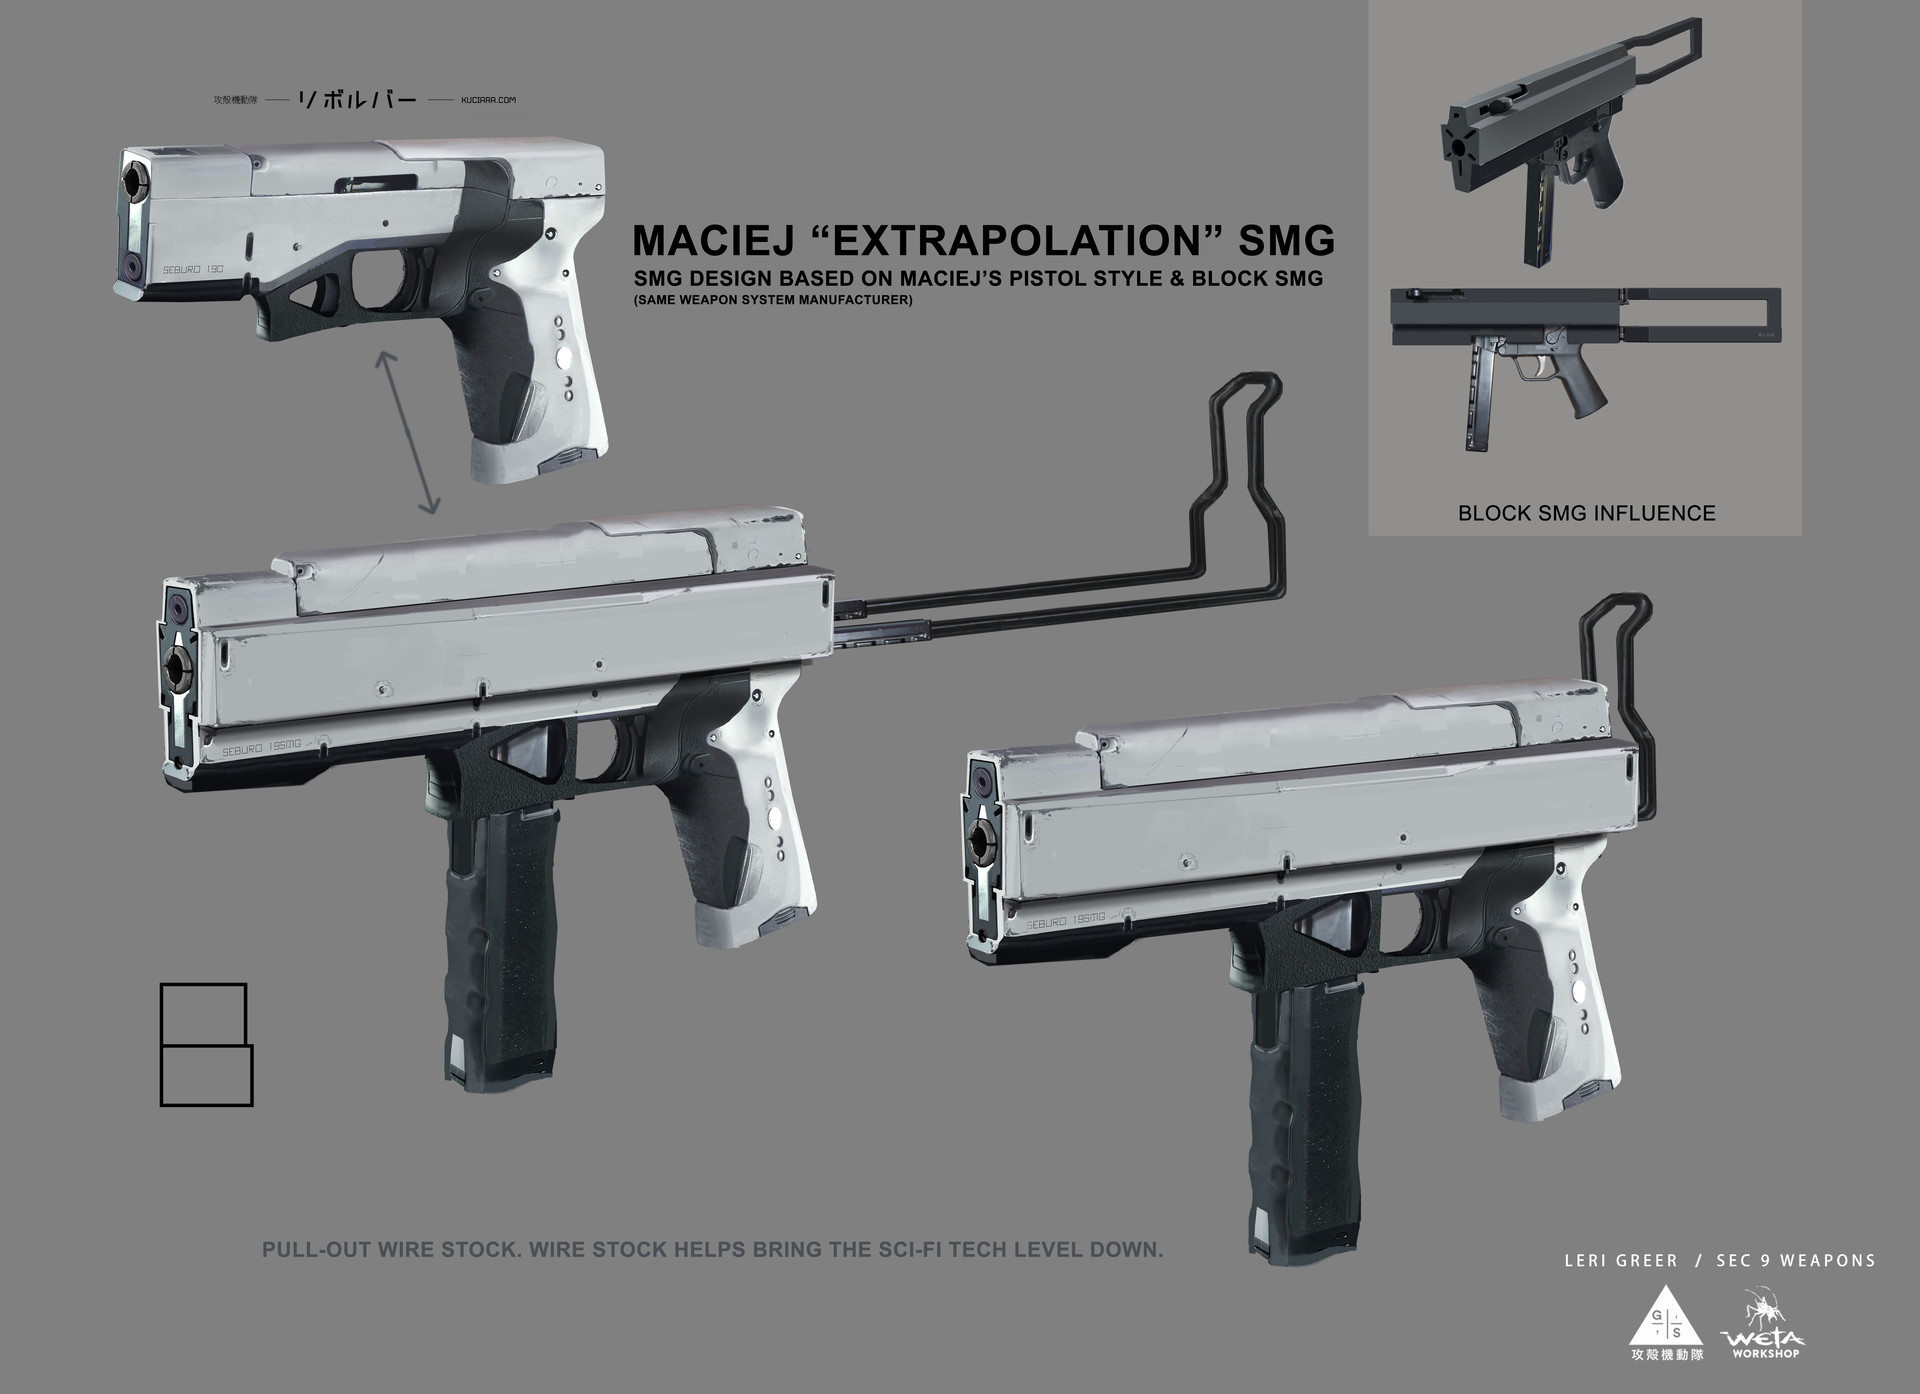 Section 9 Weapons - Artists: Leri Greer + Maciej Kuciara